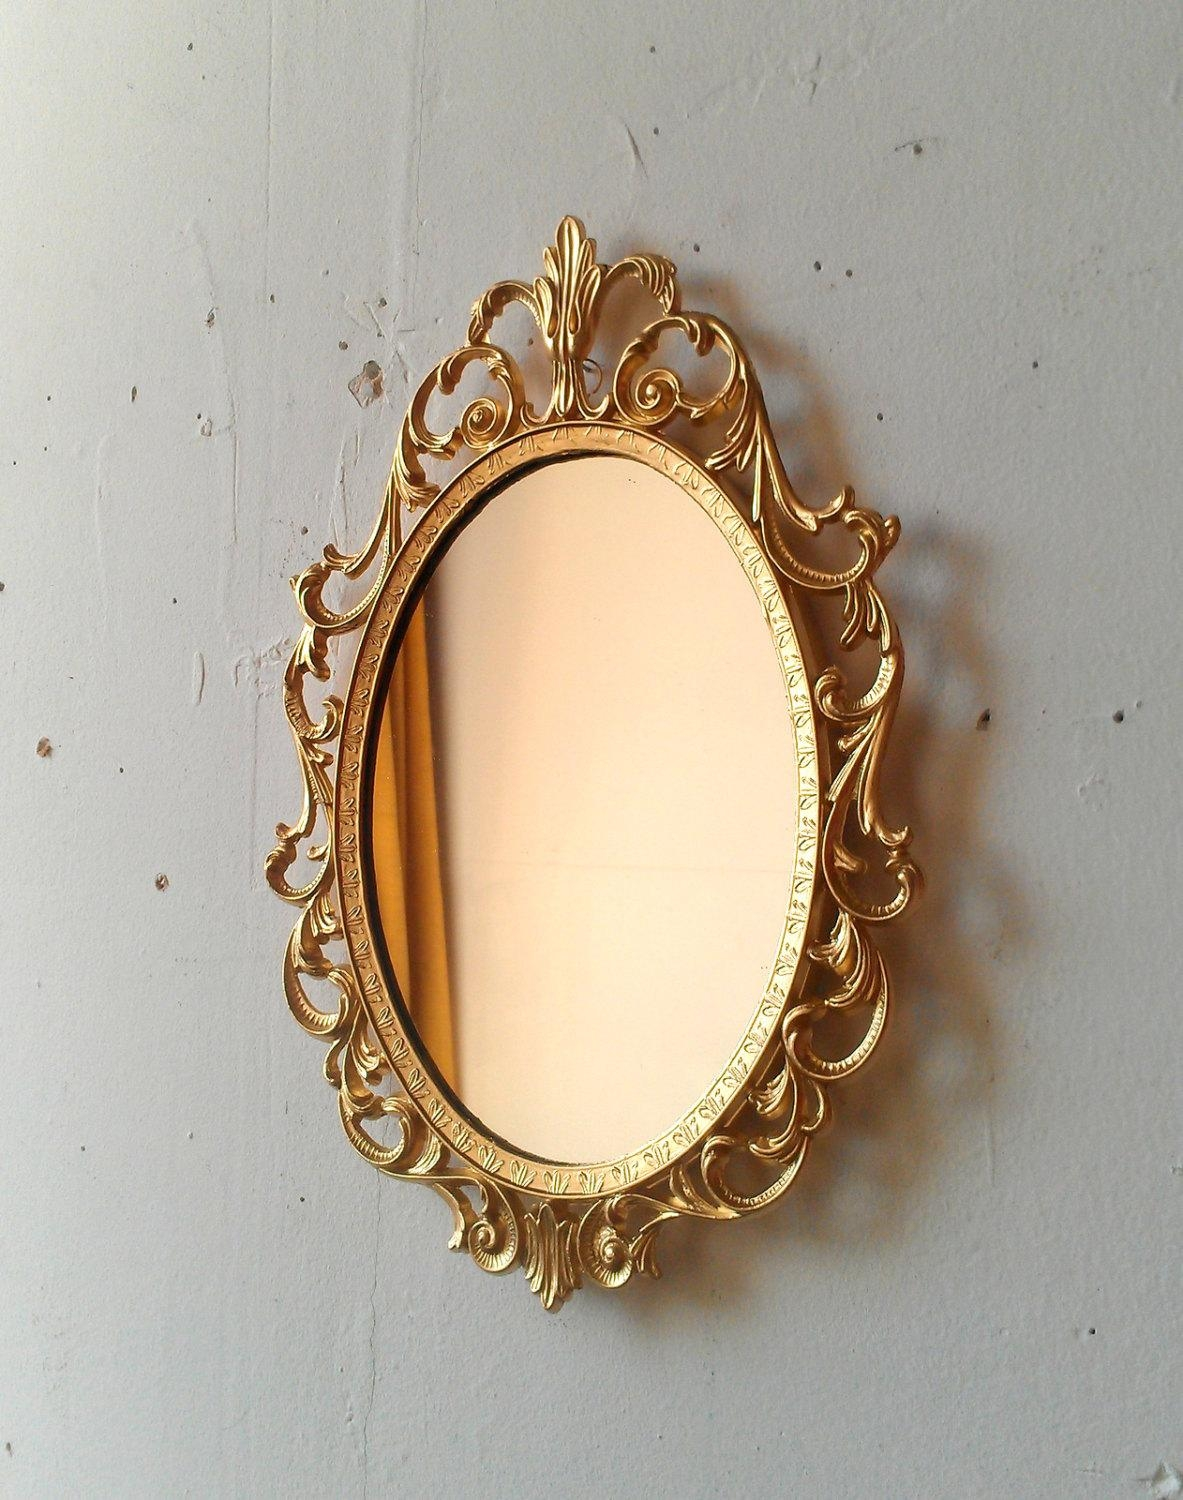 Gold Princess Mirror In Ornate Vintage Oval Frame 107 Inside Vintage Gold Mirrors (Image 11 of 20)